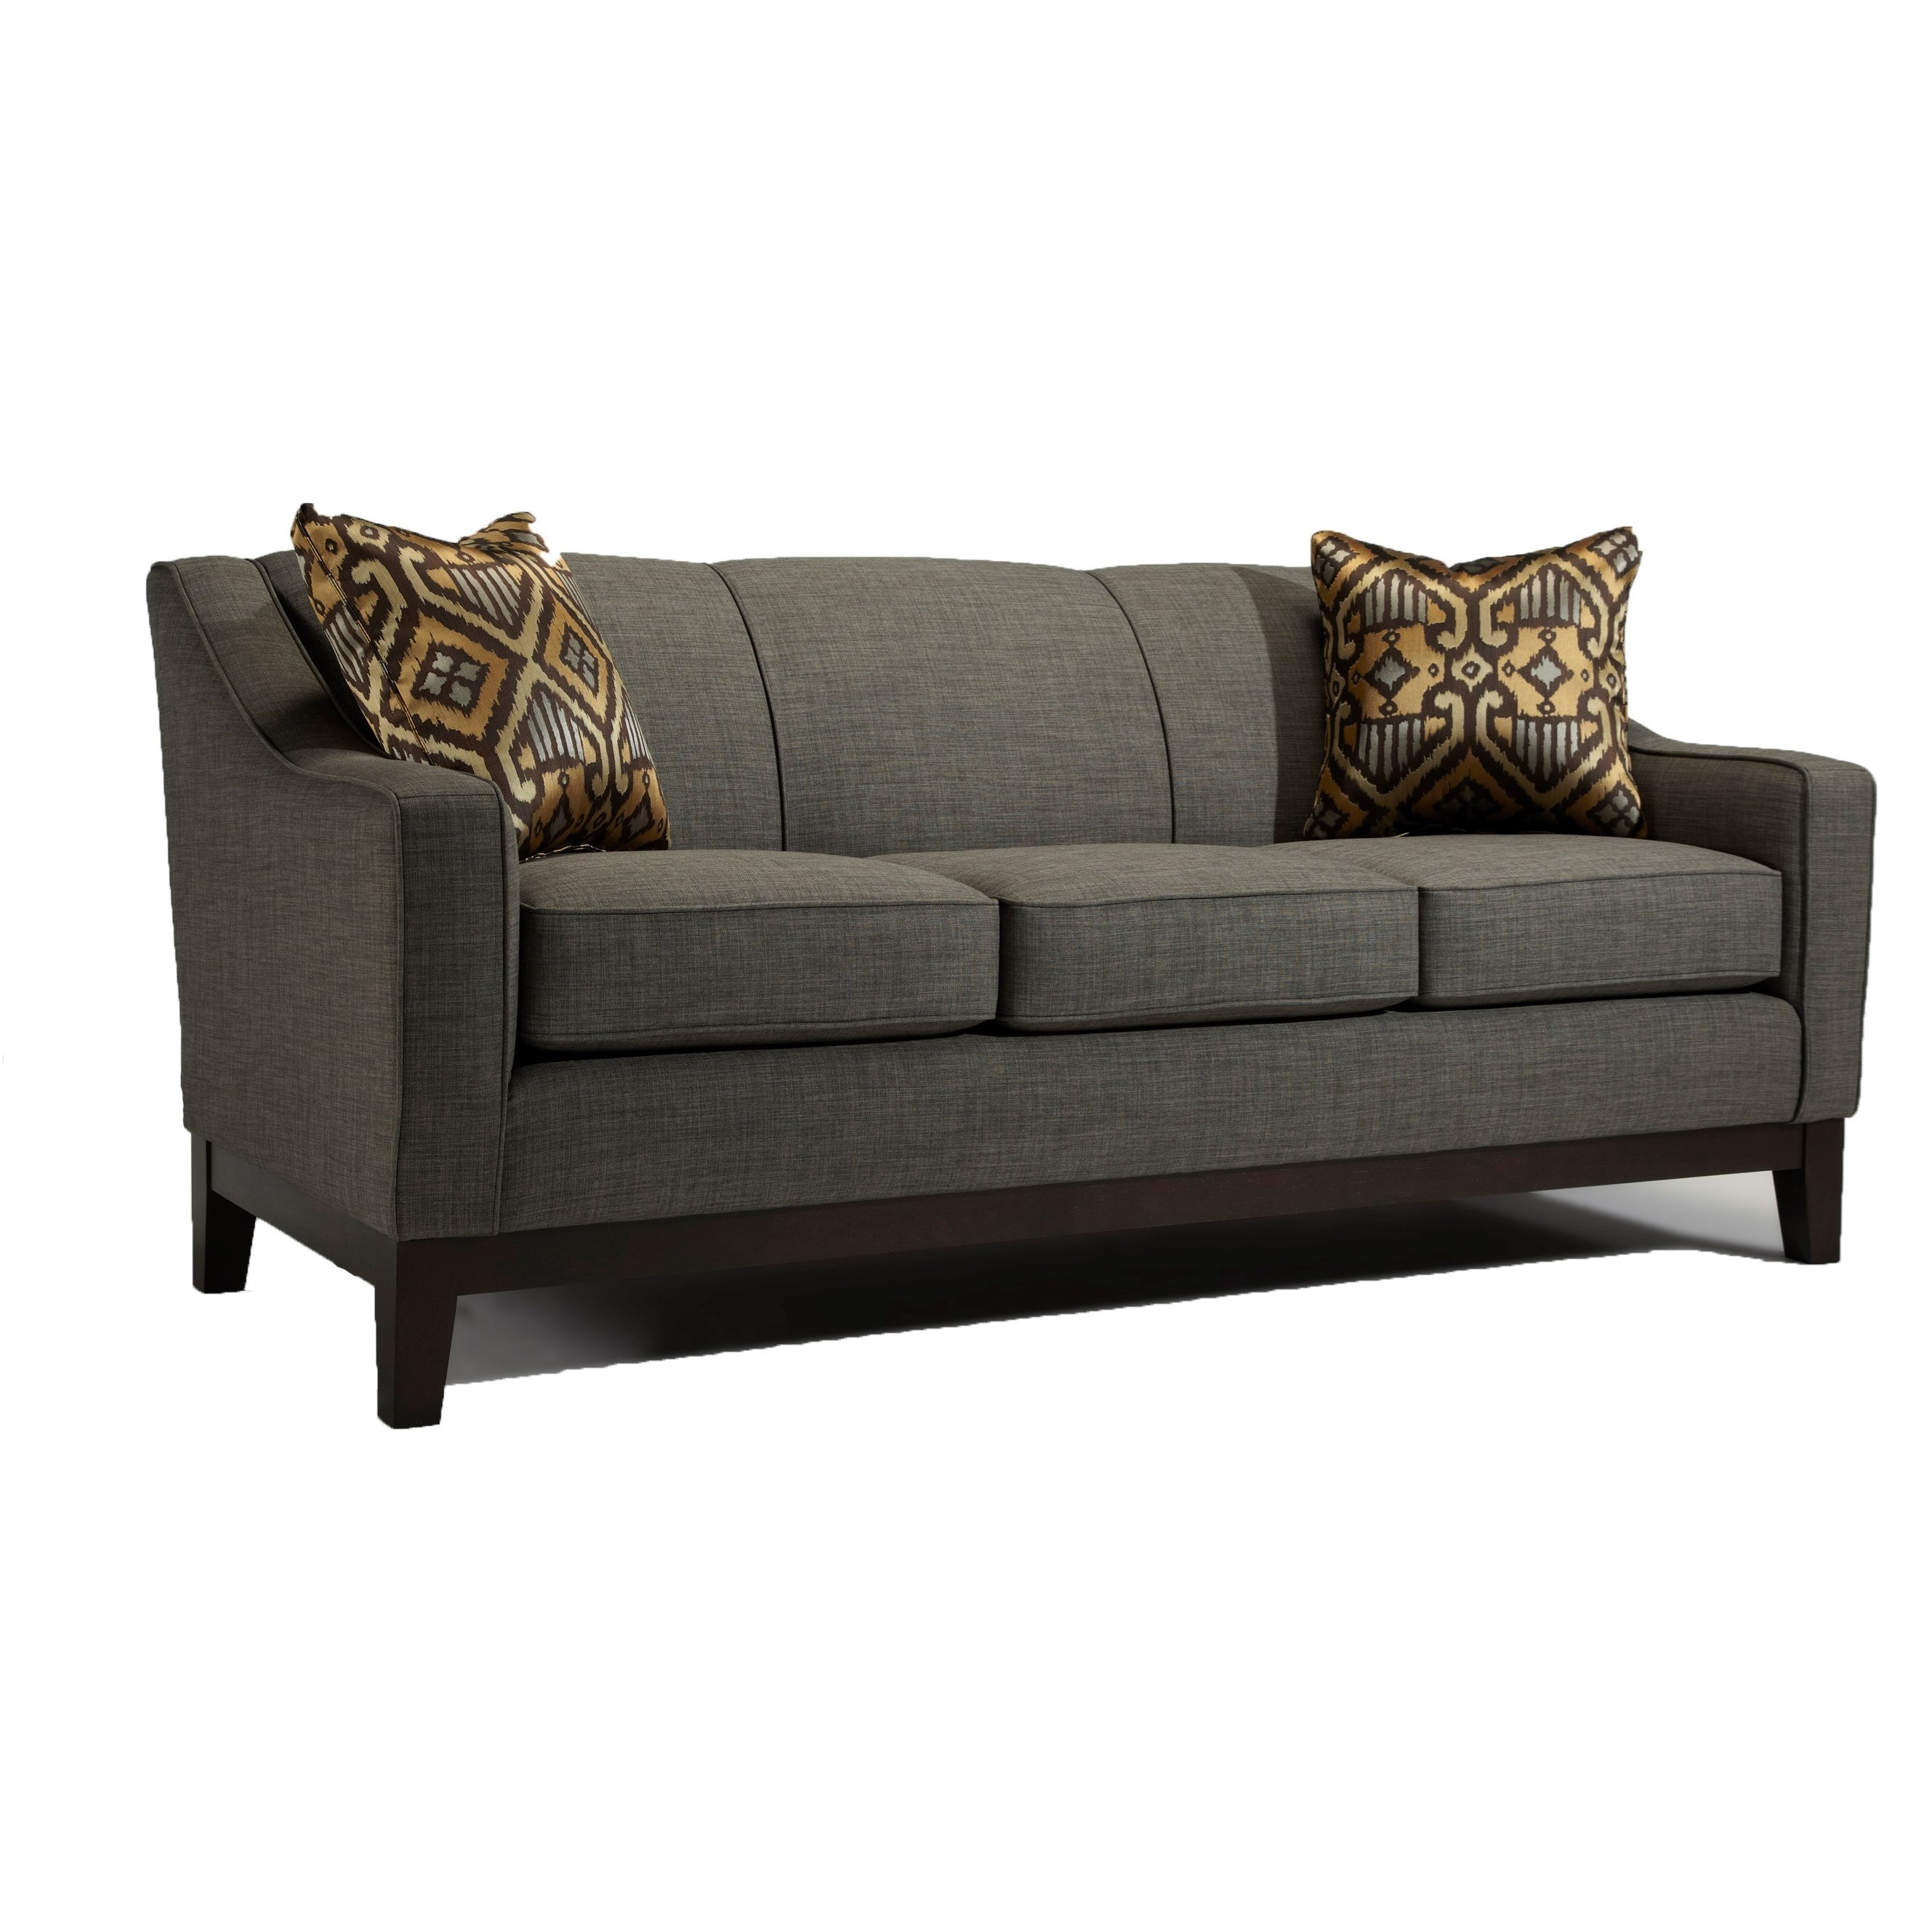 Best Home Furnishings Emeline Customizable Sofa - Item Number: S91E